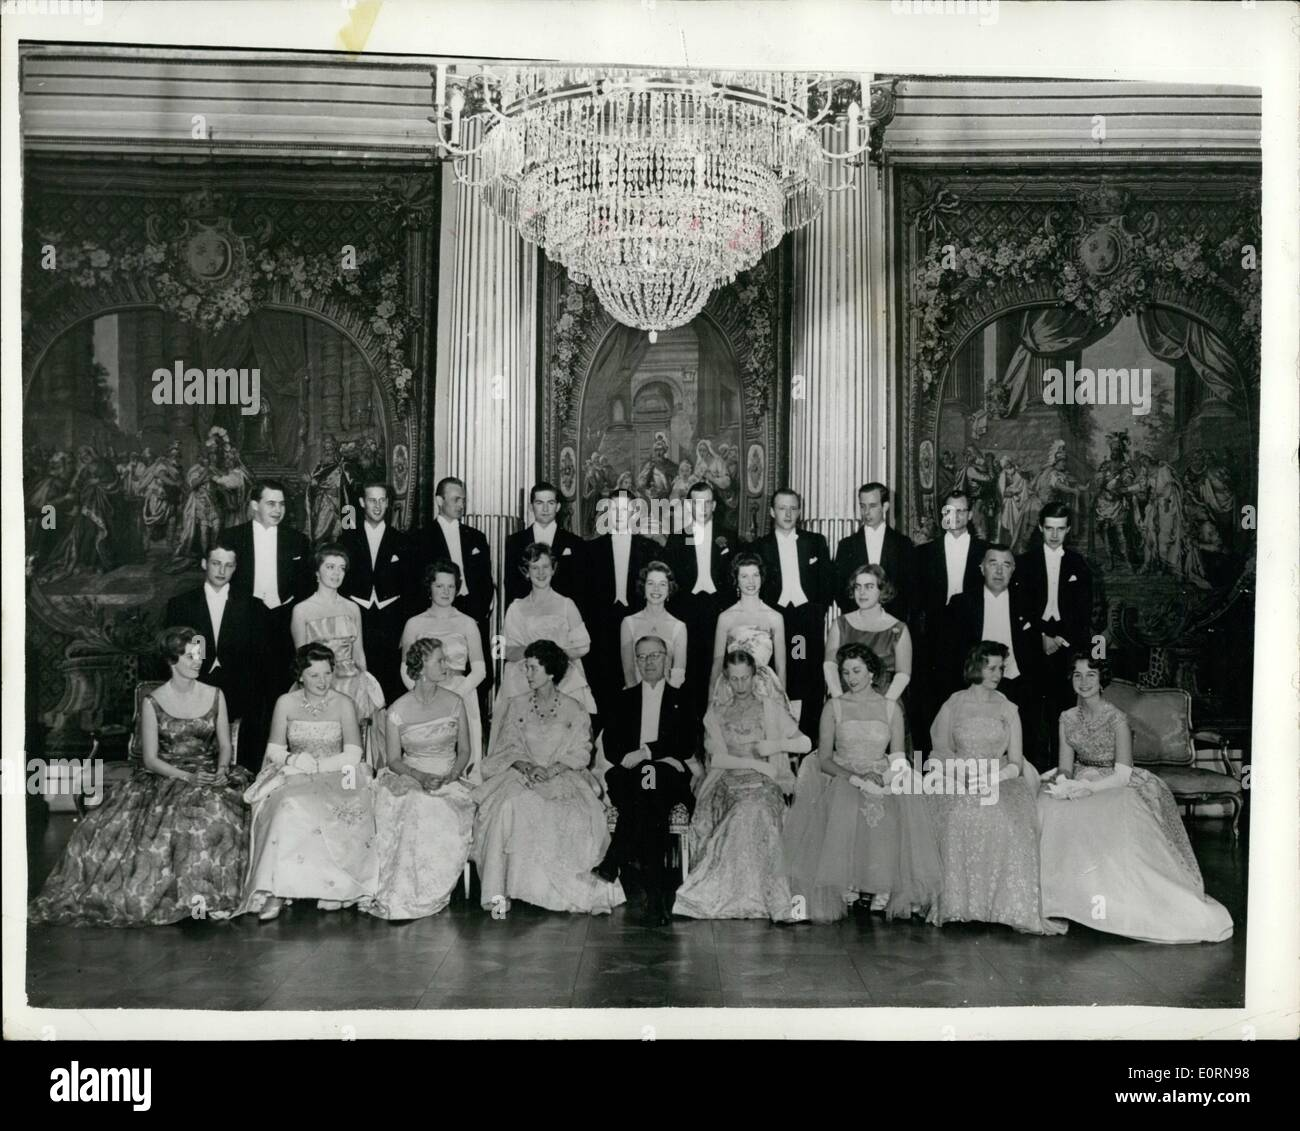 Mar. 03, 1960 - Bail At The Royal Palace In Stockholm. Photo shows Posed group taken at last night's glittering ball, held in the Royal Palace in Stockholm. (L to R - First Row): Princess Margaretha of Sweden, Princess Beatrix, of the Netherlands, Princess Sibylla, of Sweden, Queen Frederica, of the Hellenes, King Gustav Adolf and Queen Louise of Sweden, Princess Alexandra of Kent, and Princess Sophie of the Hallents - Stock Image